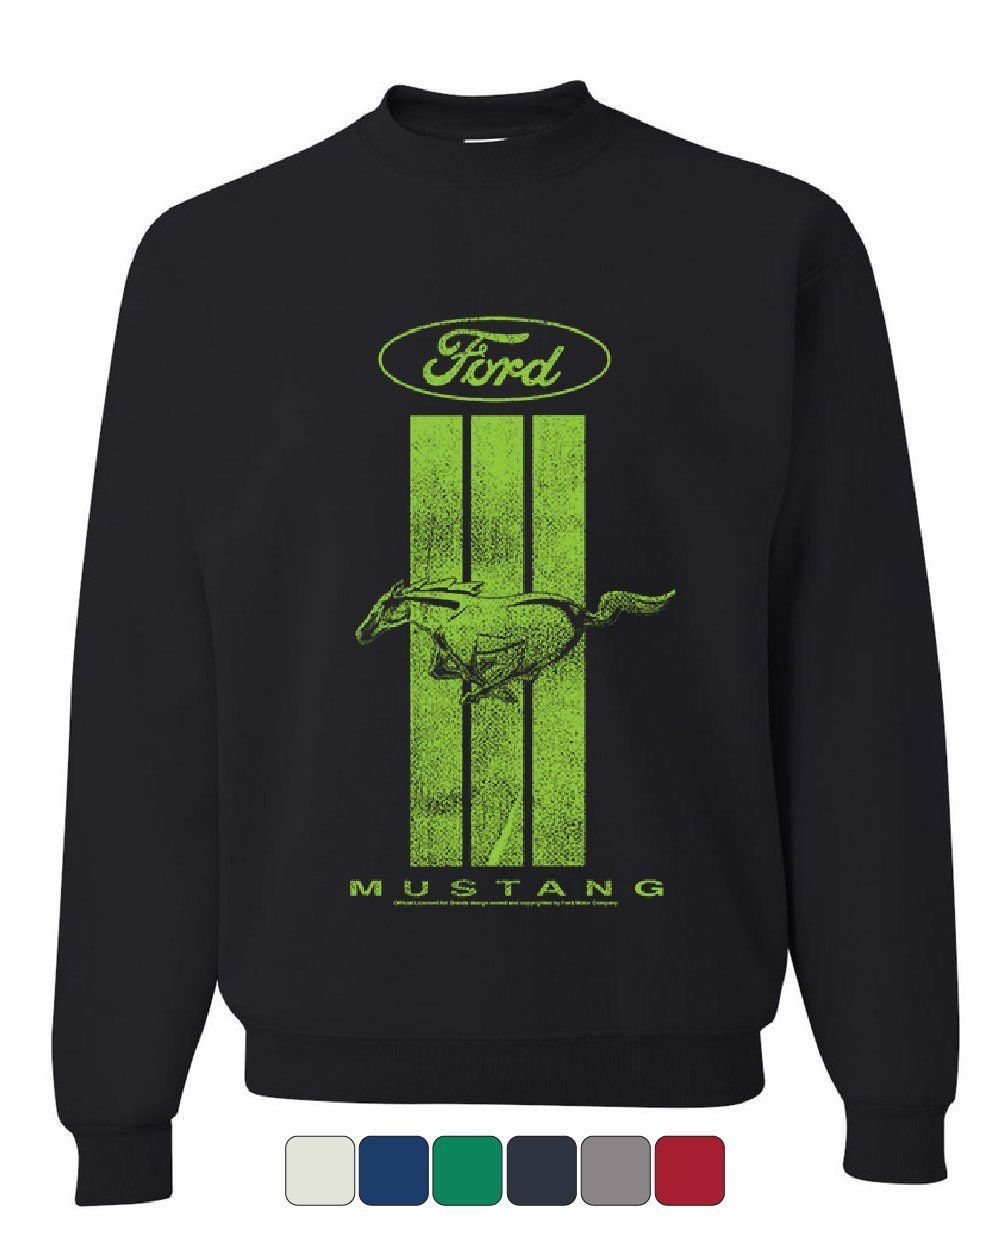 Ford Mustang Green Stripe Sweatshirt Classic American Muscle Car - $15.49 - $27.99